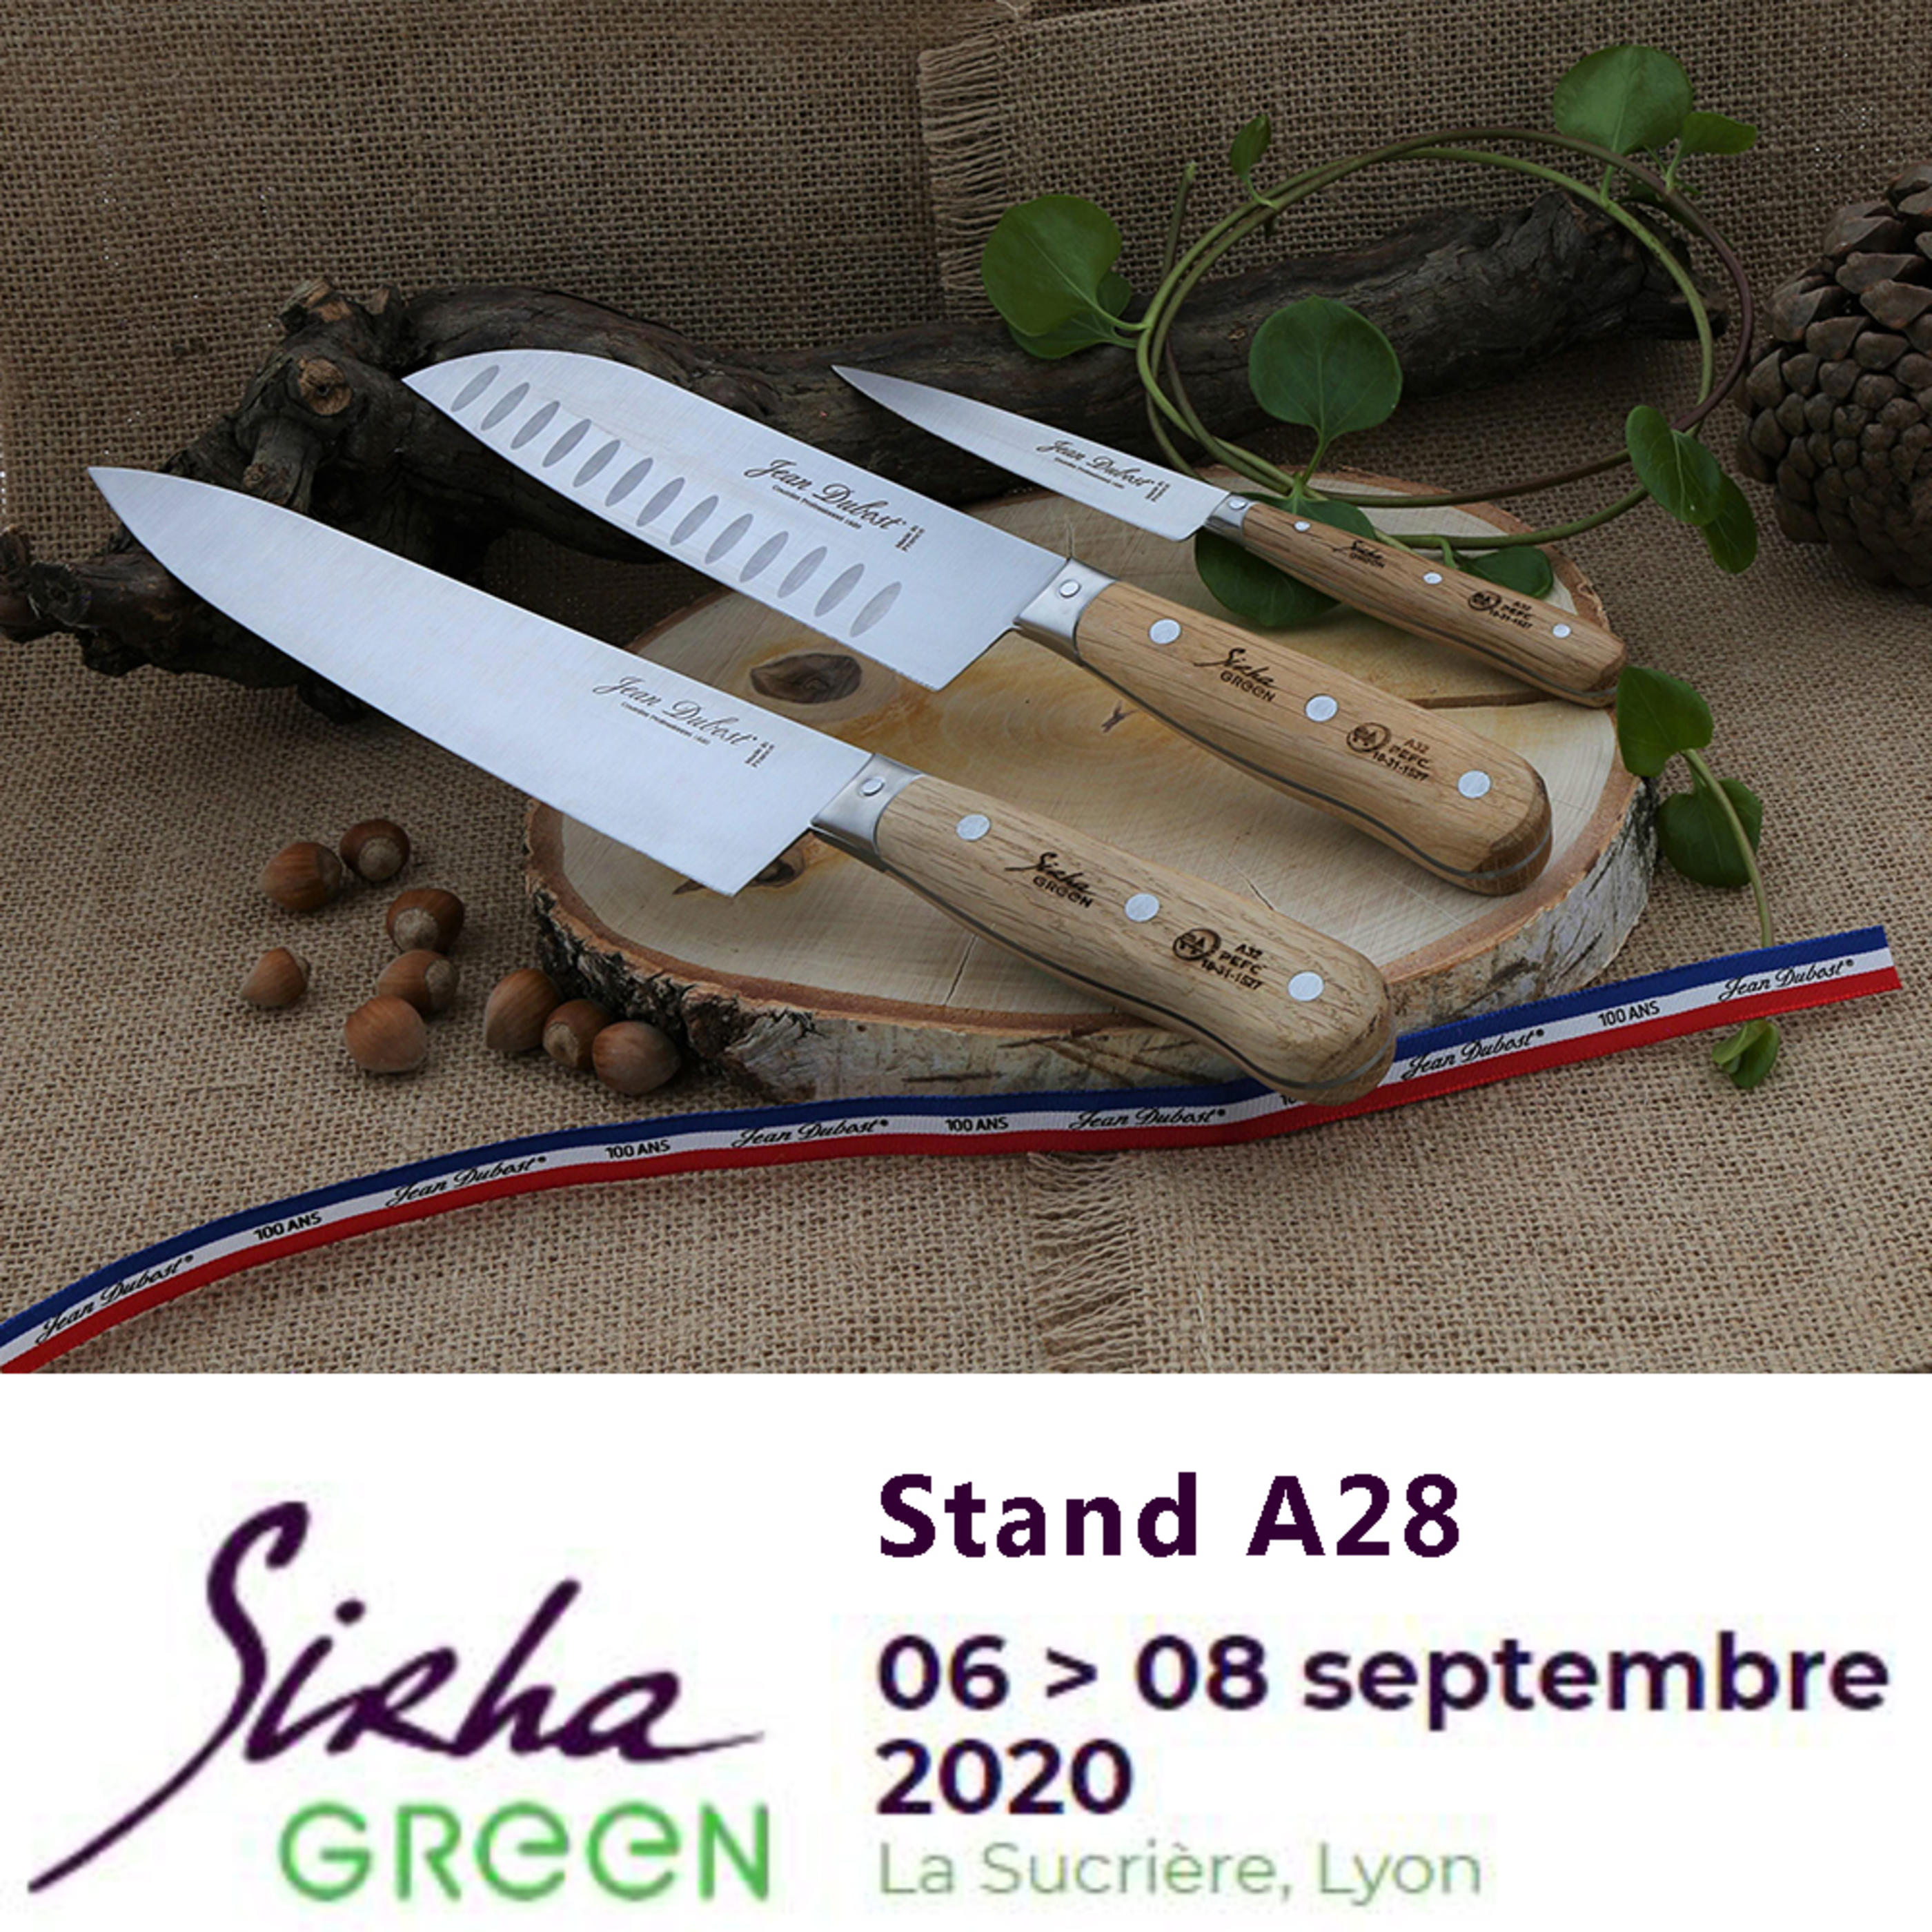 Jean_Dubost_Sirha_green_septembre_2020_stand_A28